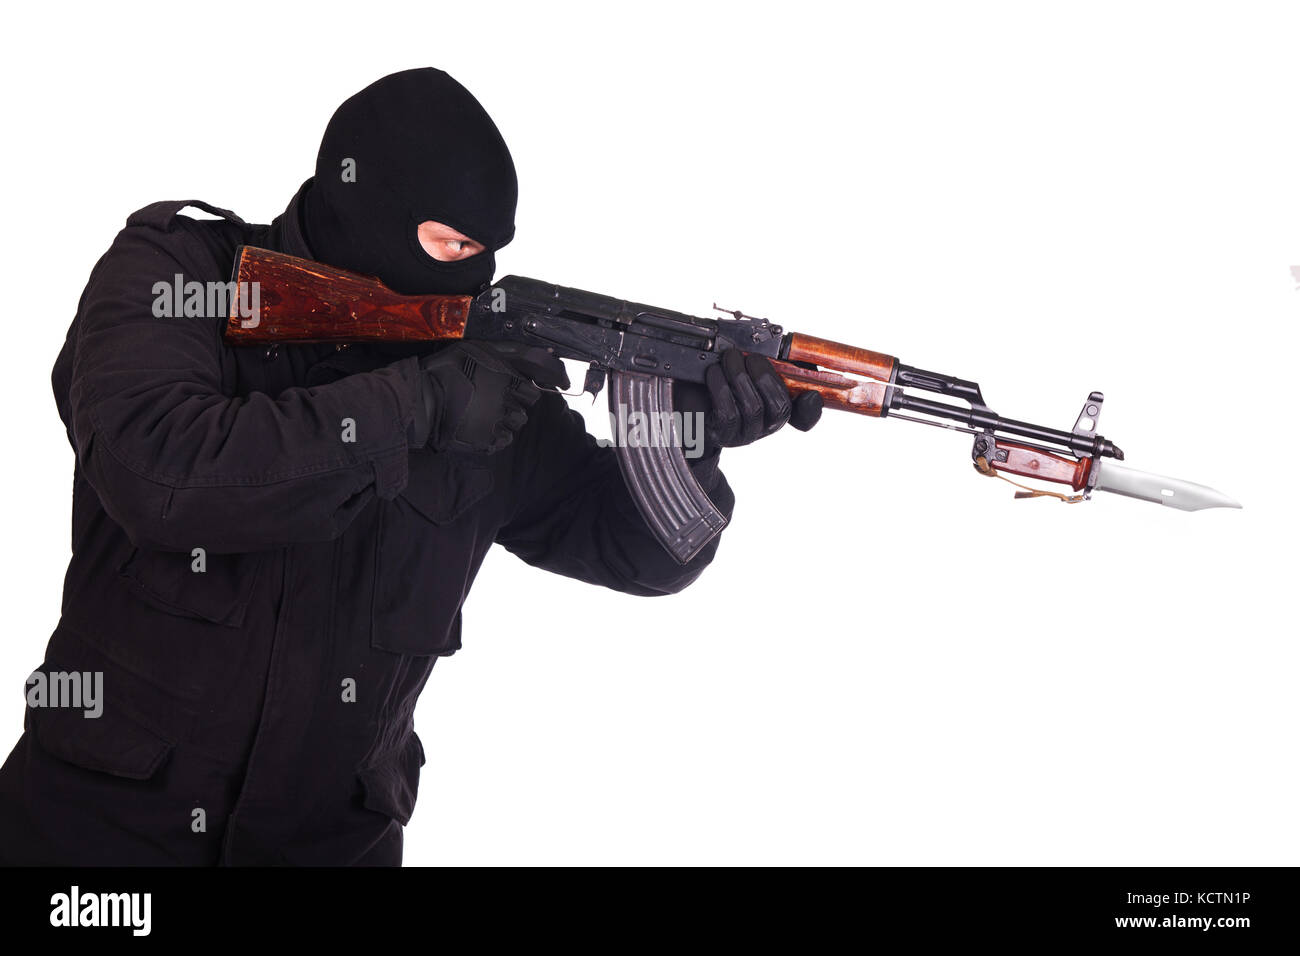 man in black uniform and mask with AK 47 gun Stock Photo